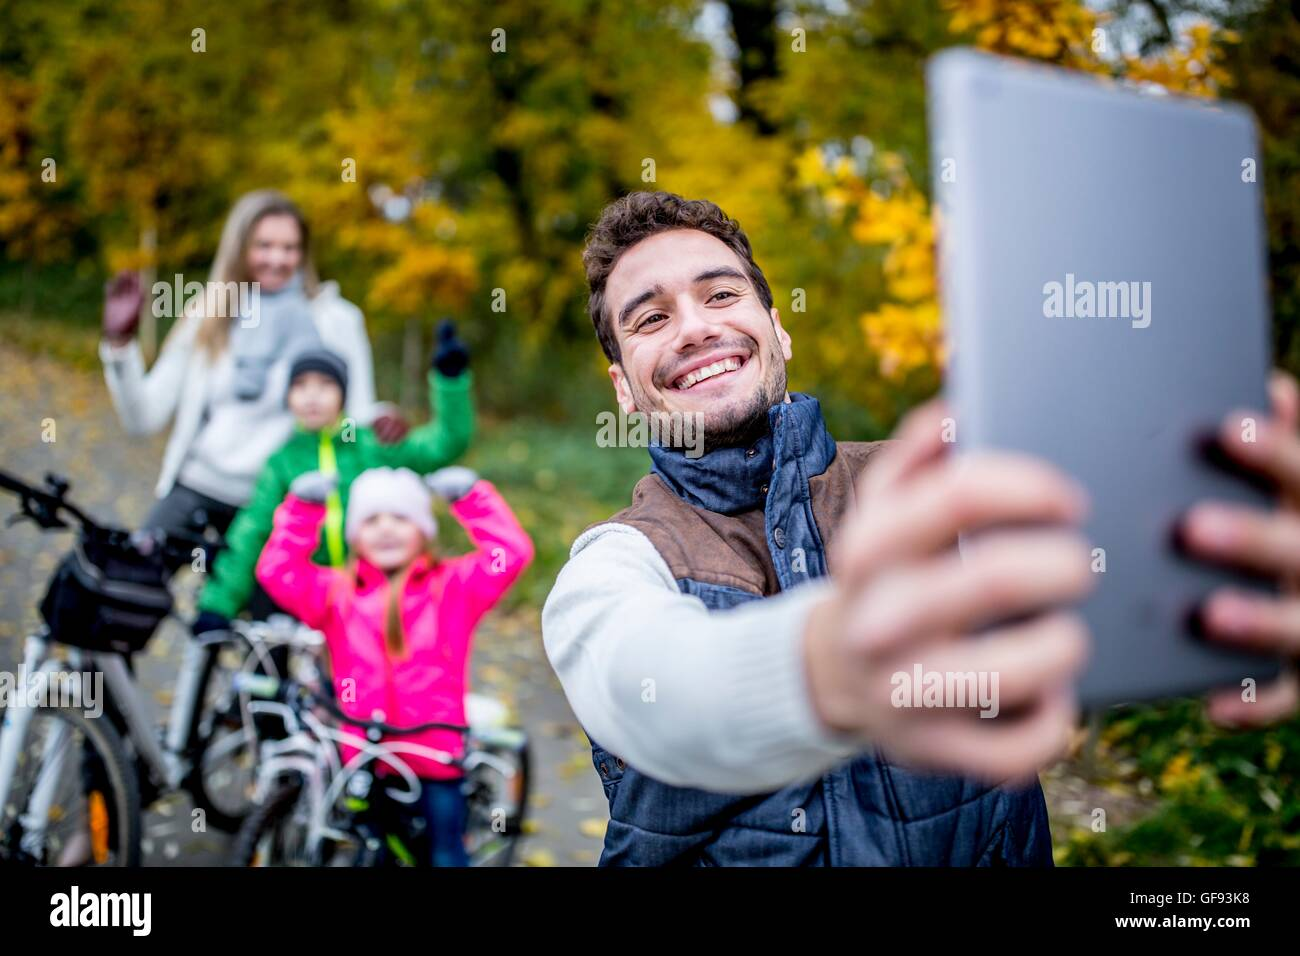 MODEL RELEASED. Smiling man taking photo of family. - Stock Image